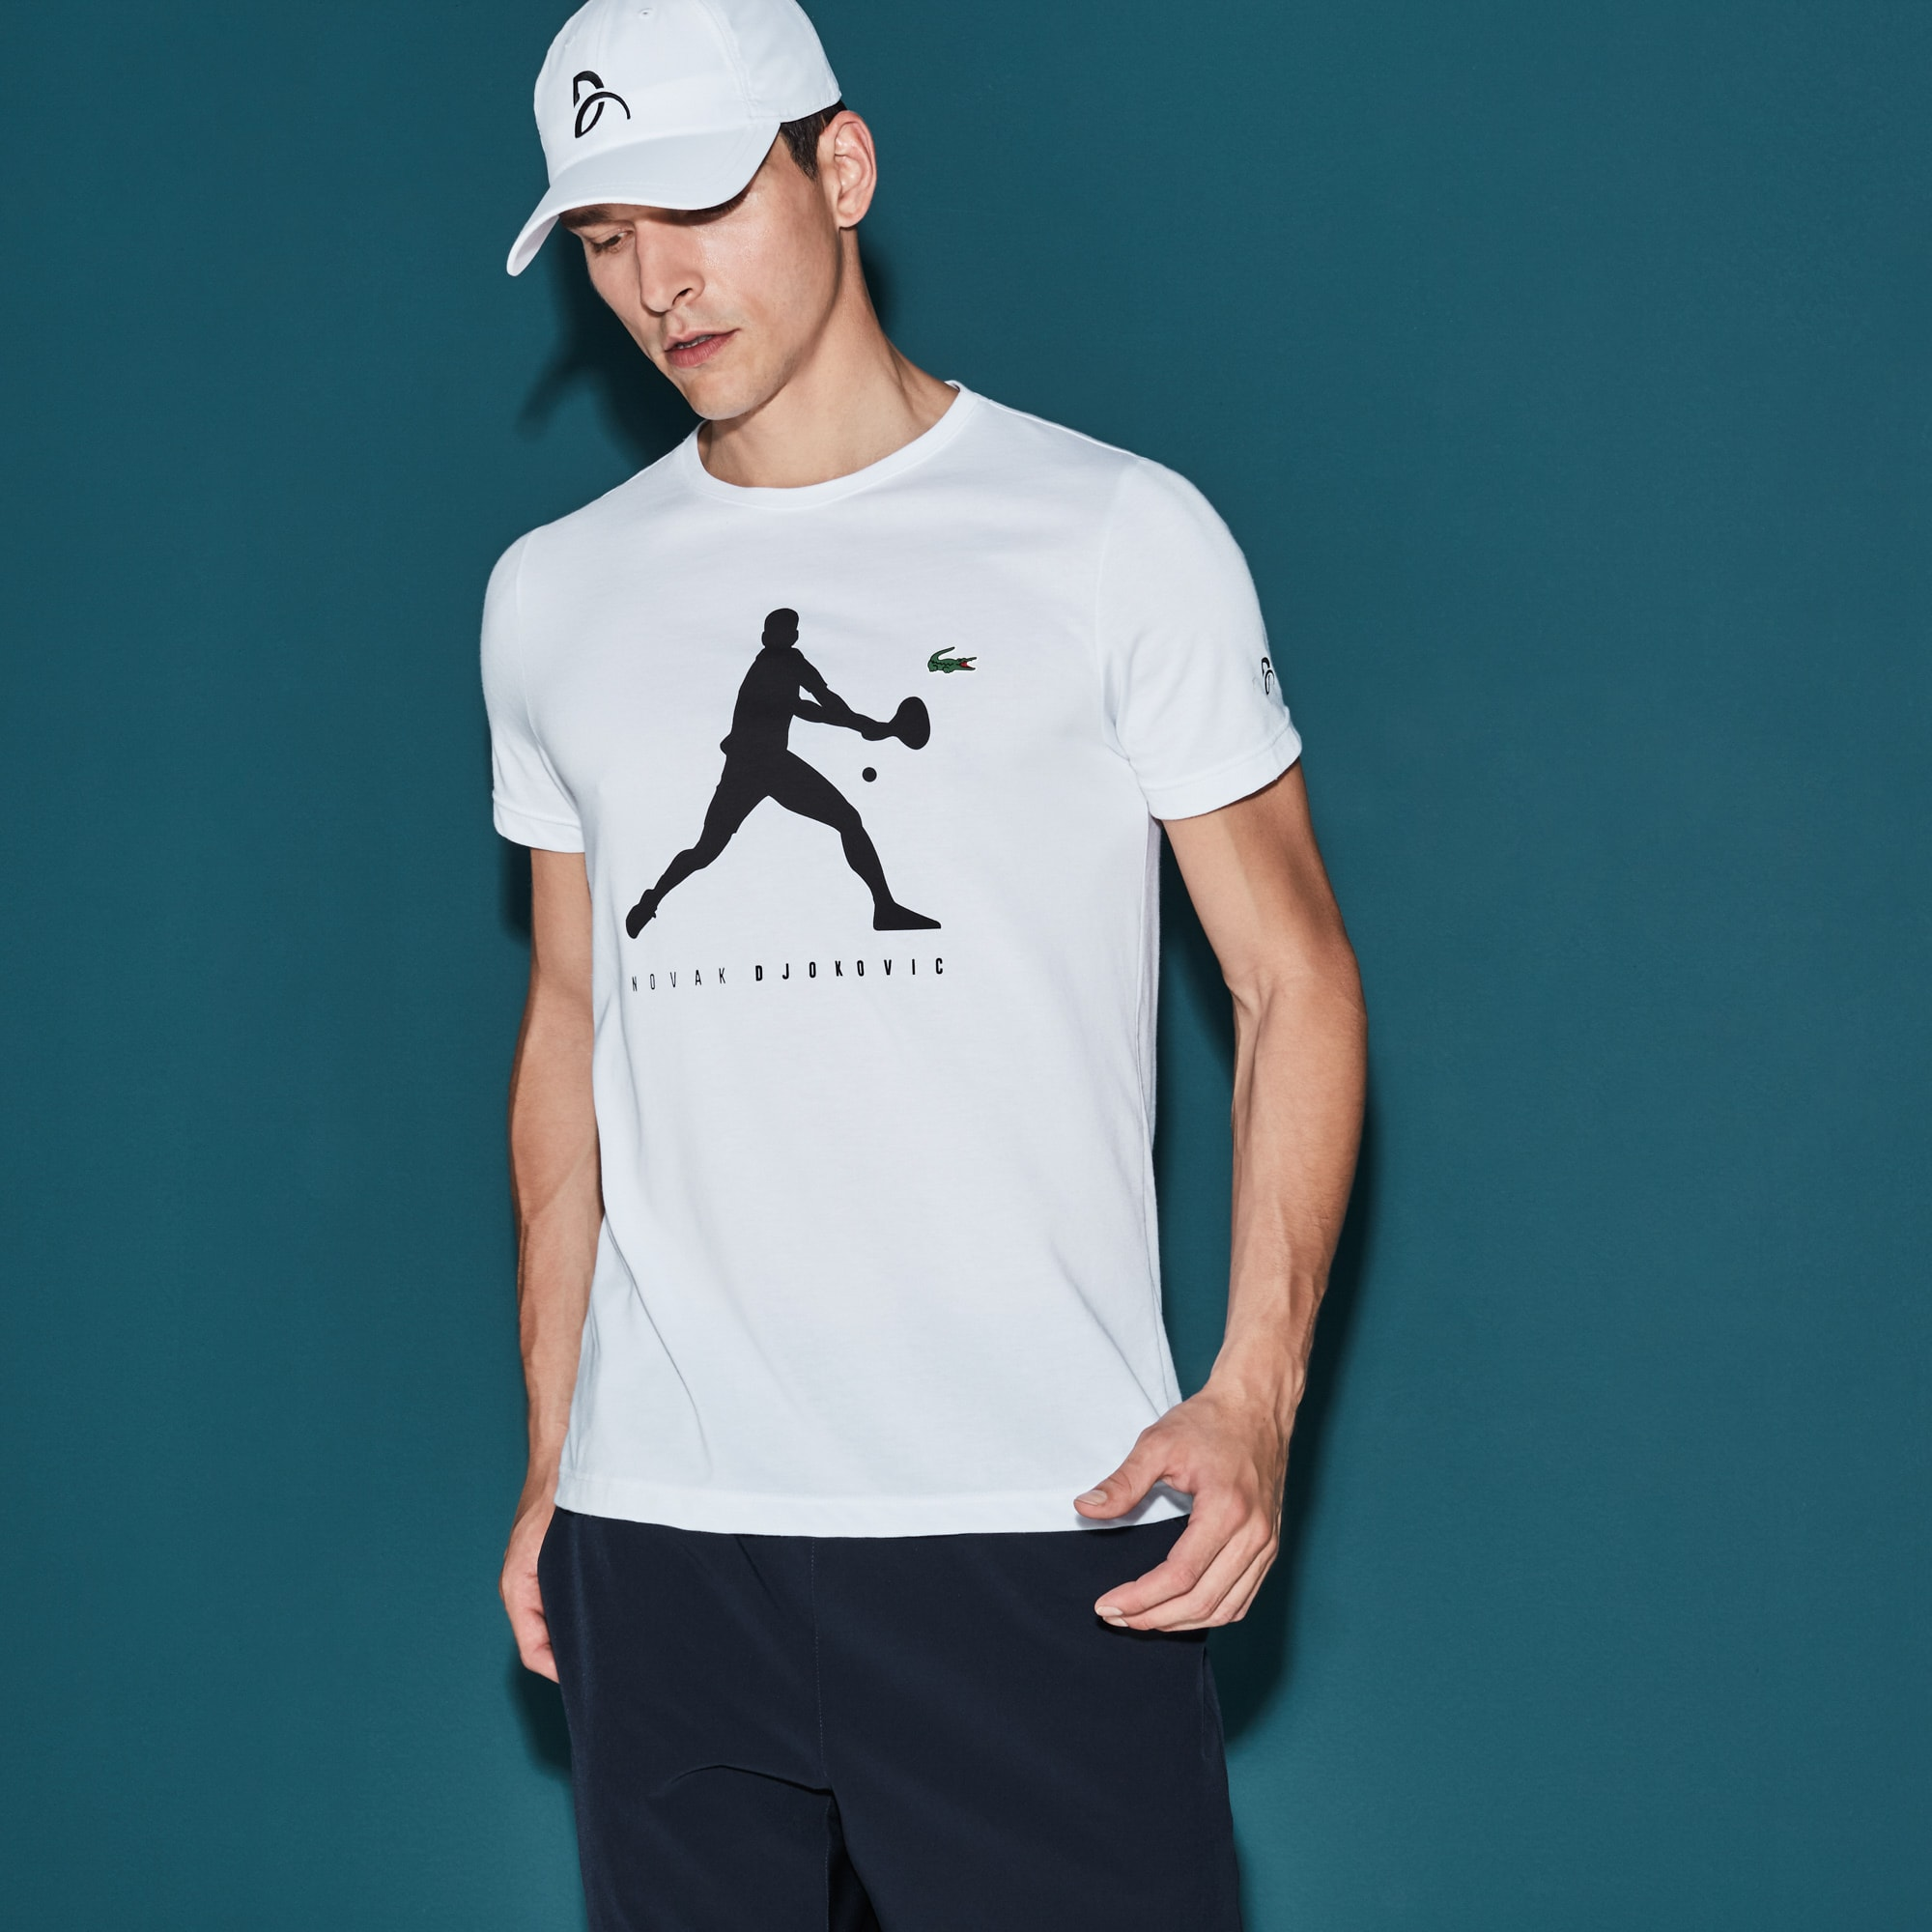 Men's SPORT Tennis Tech Jersey T-shirt - Novak Djokovic Supporter Collection